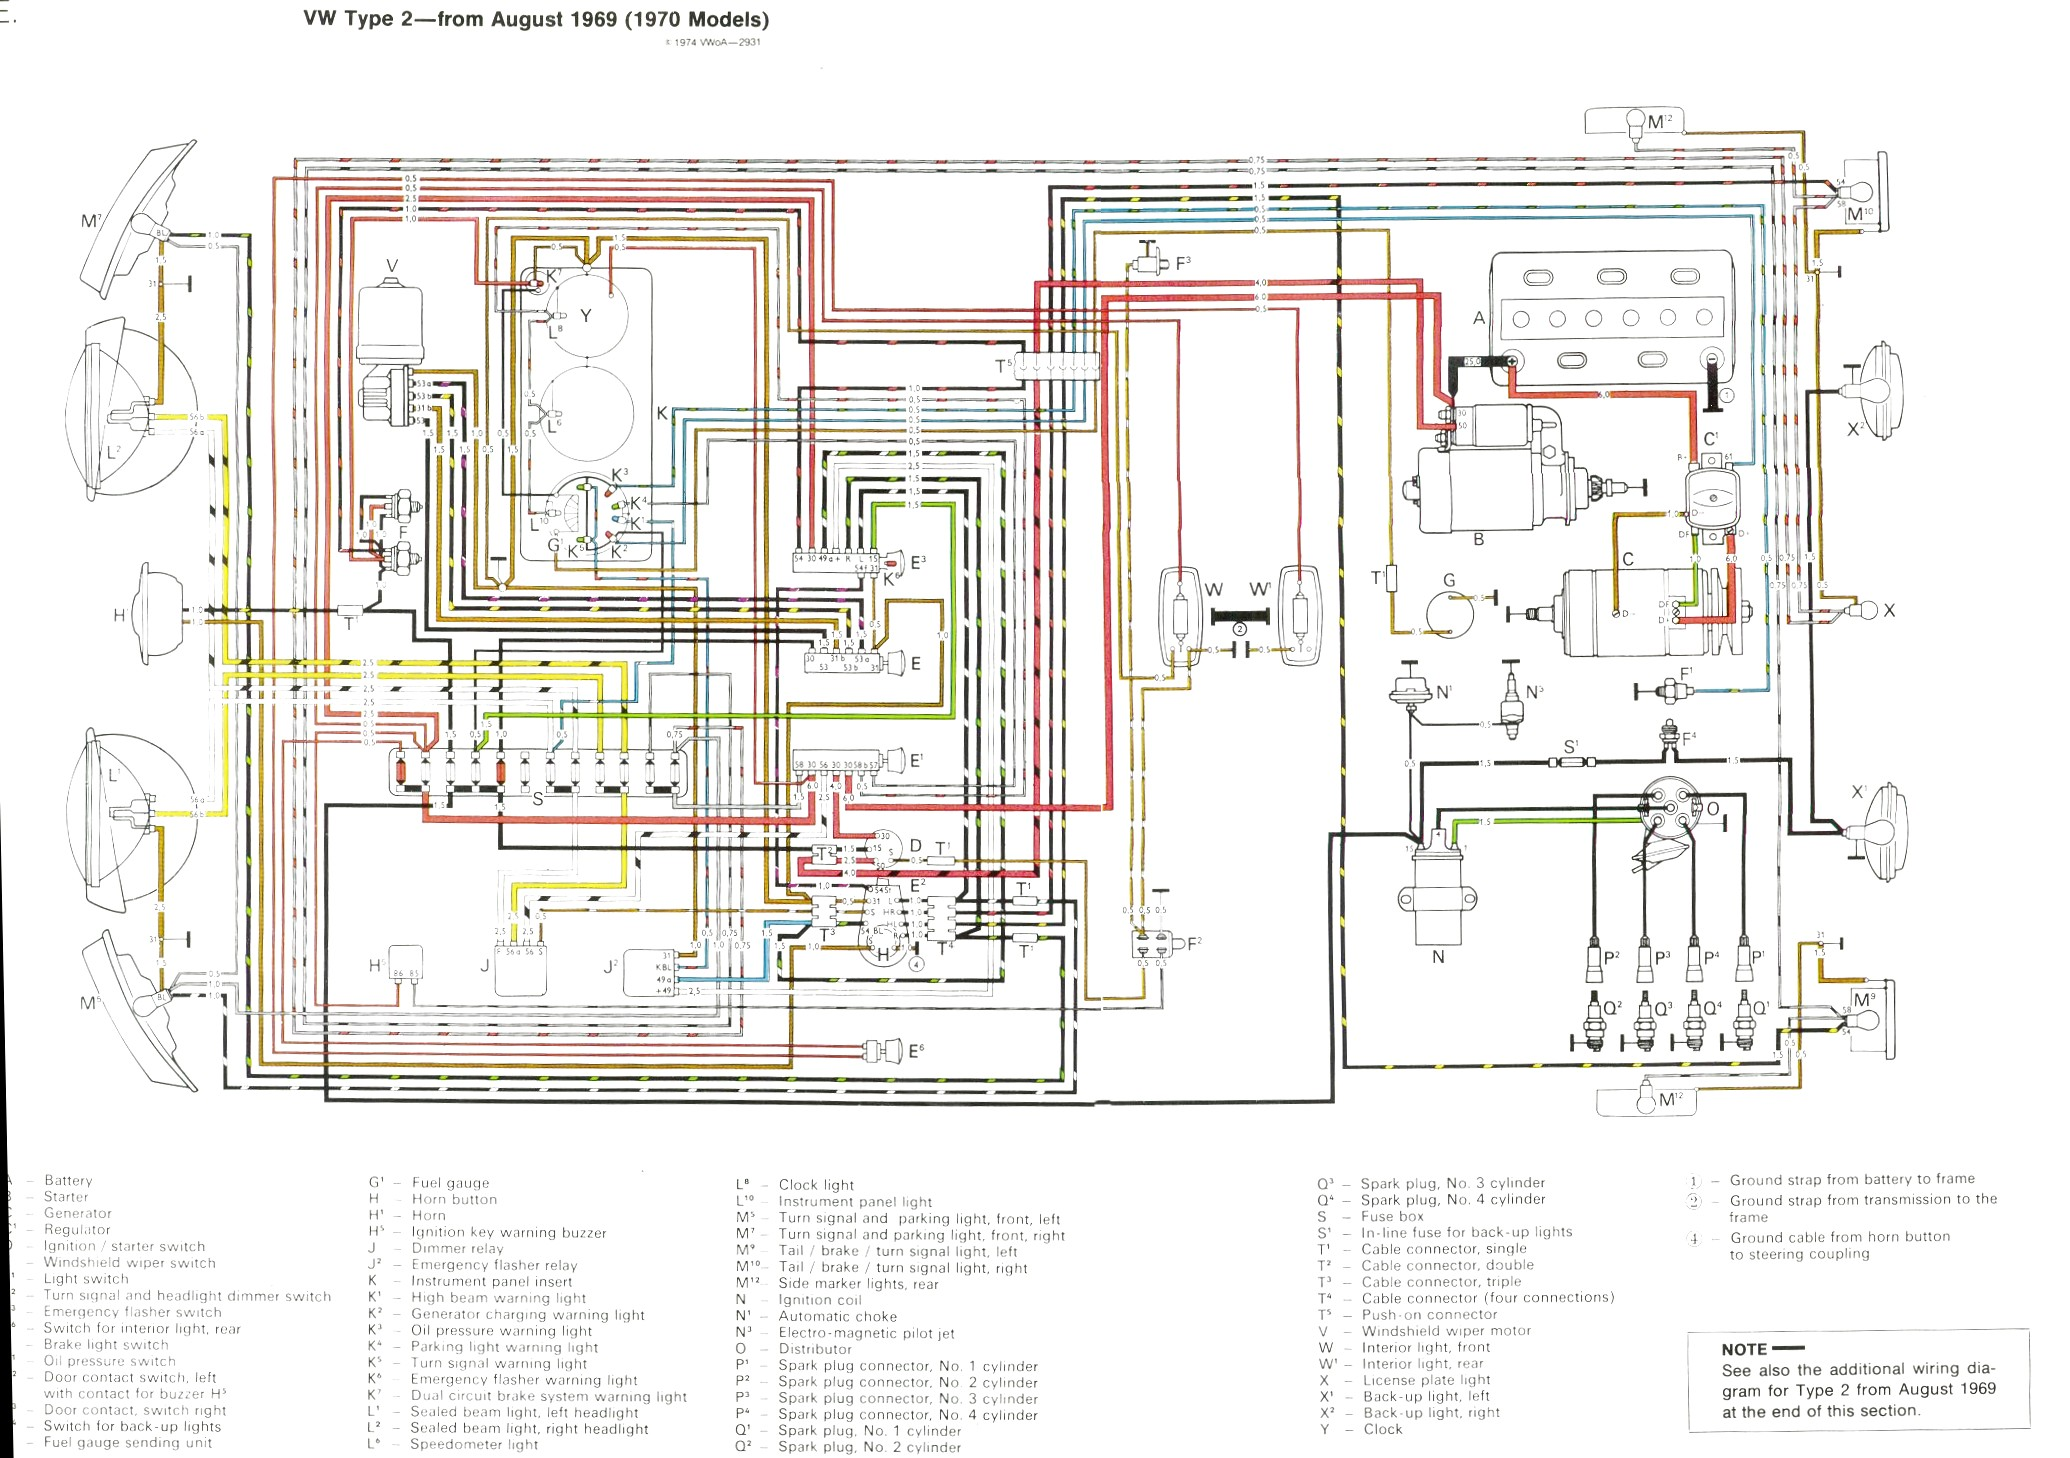 2000 vw eurovan fuse box diagram baywindow fusebox layout  baywindow fusebox layout